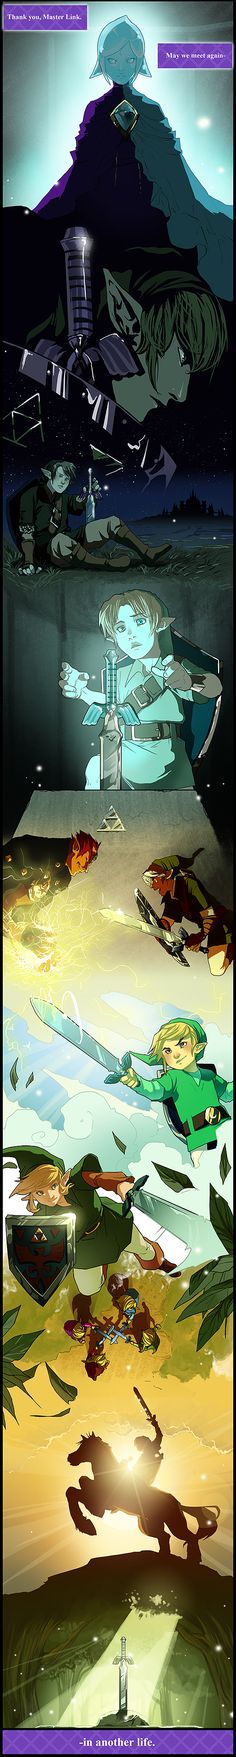 """Thank you, Master Link. May we meet again in another life."" - Fi (Spirit of the Master Sword) The Legend of Zelda; fan art"